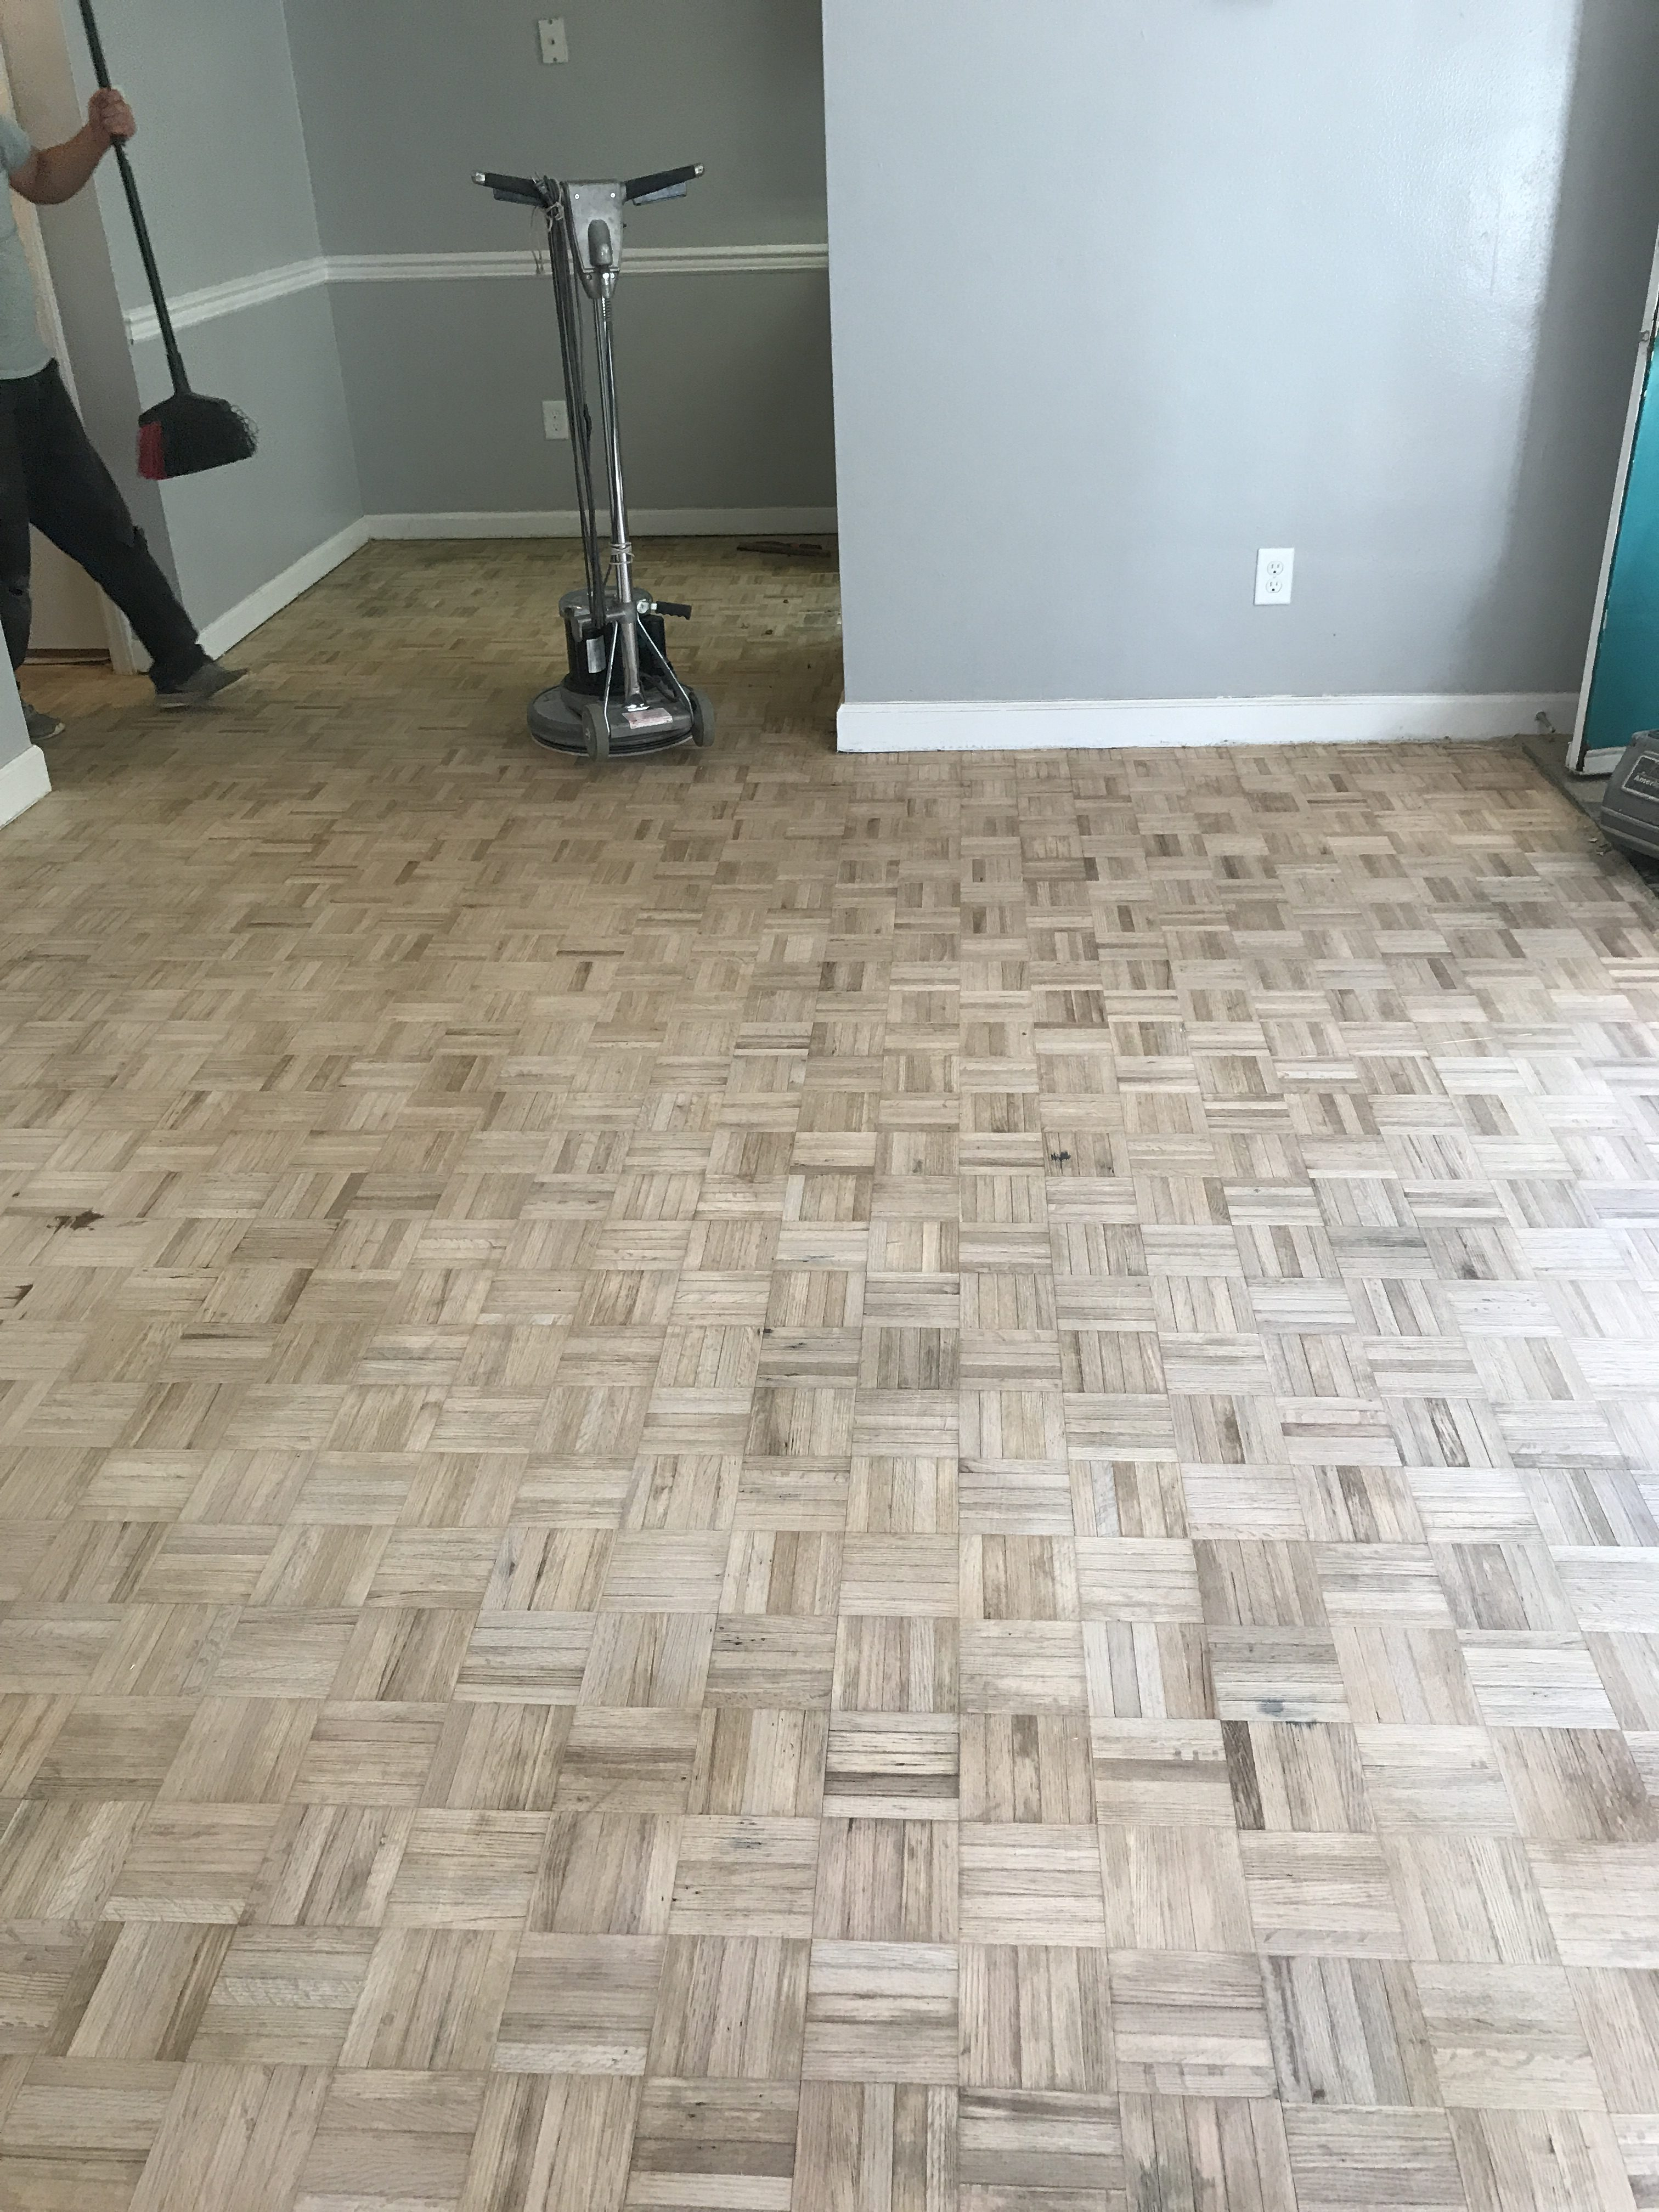 Flooring contractors roanoke va carpet vidalondon for Flooring contractors